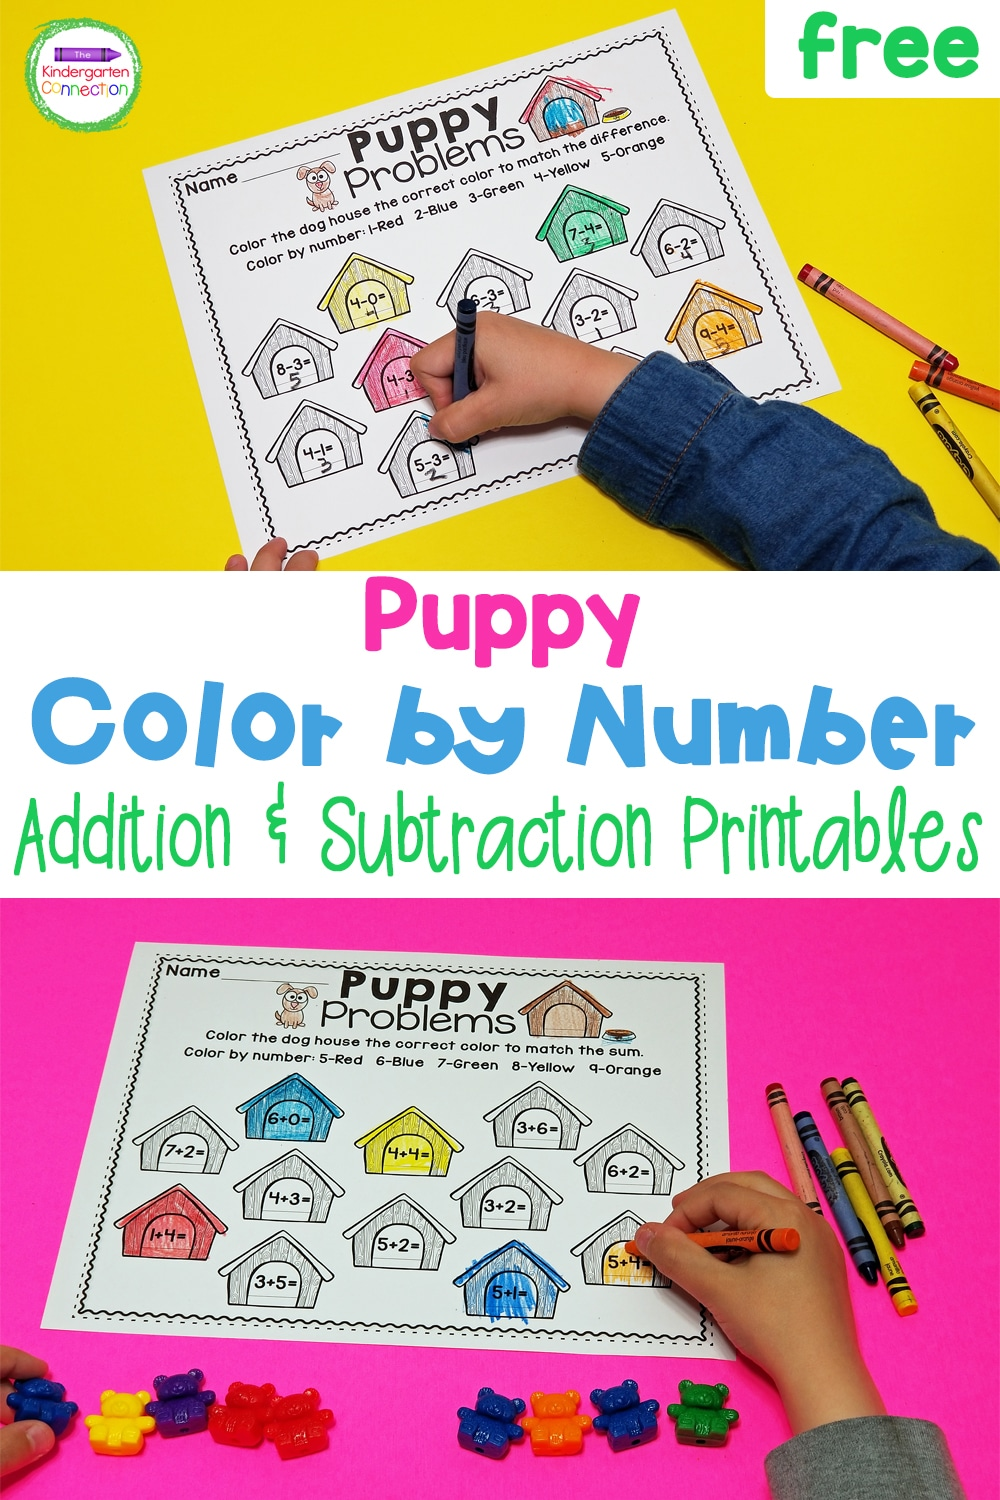 These FREE Puppy Color by Number Math Printables are available in addition and subtraction and are perfect for your early learners!